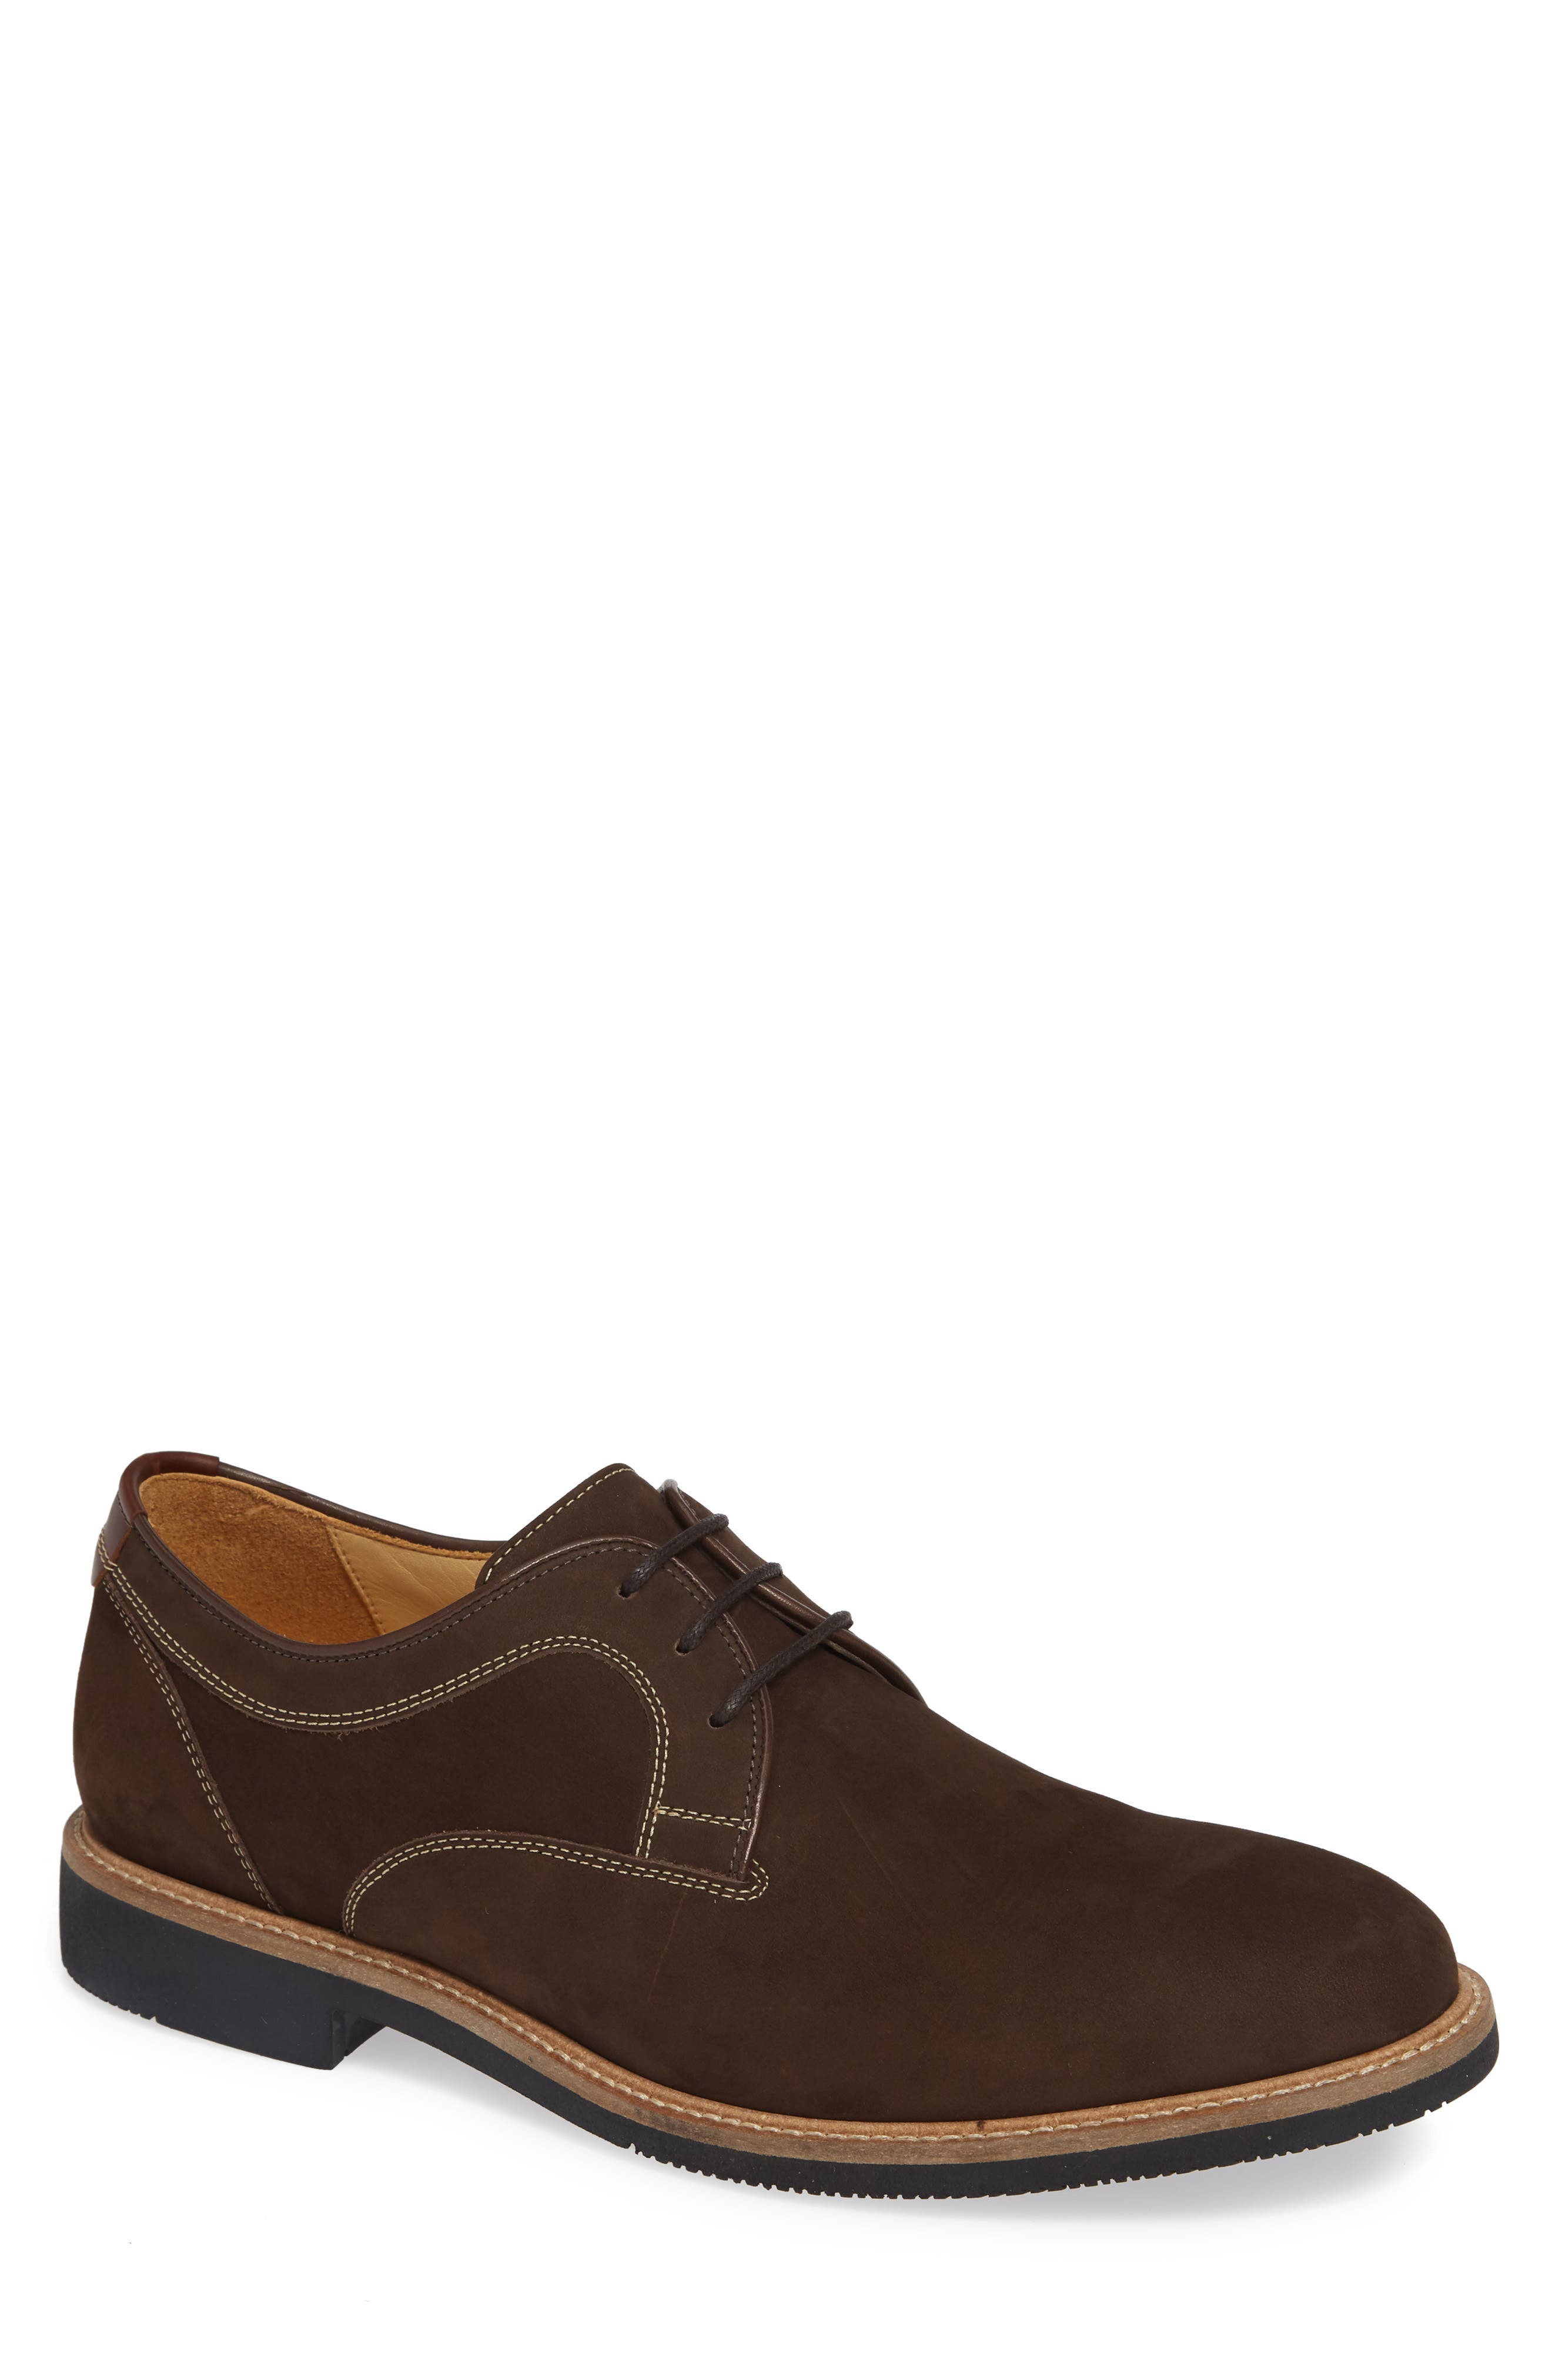 JOHNSTON & MURPHY,                             Barlow Plain Toe Derby,                             Main thumbnail 1, color,                             CHOCOLATE NUBUCK